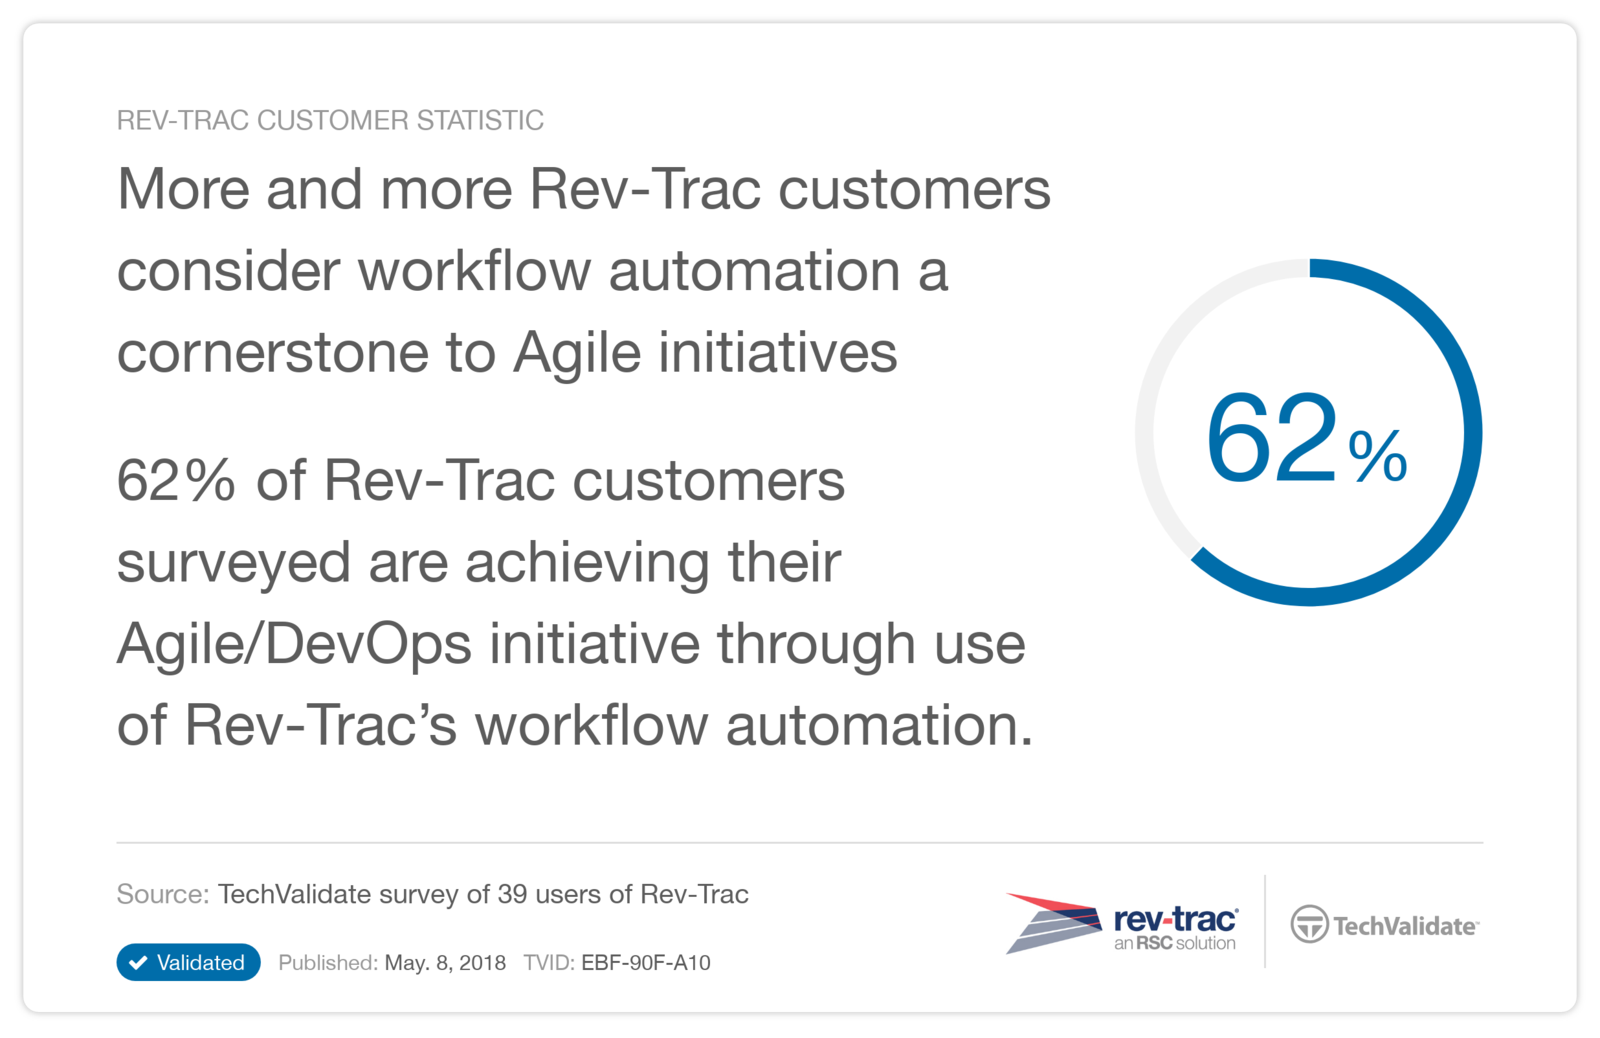 More and more Rev-Trac customers consider workflow automation a cornerstone to Agile initiatives